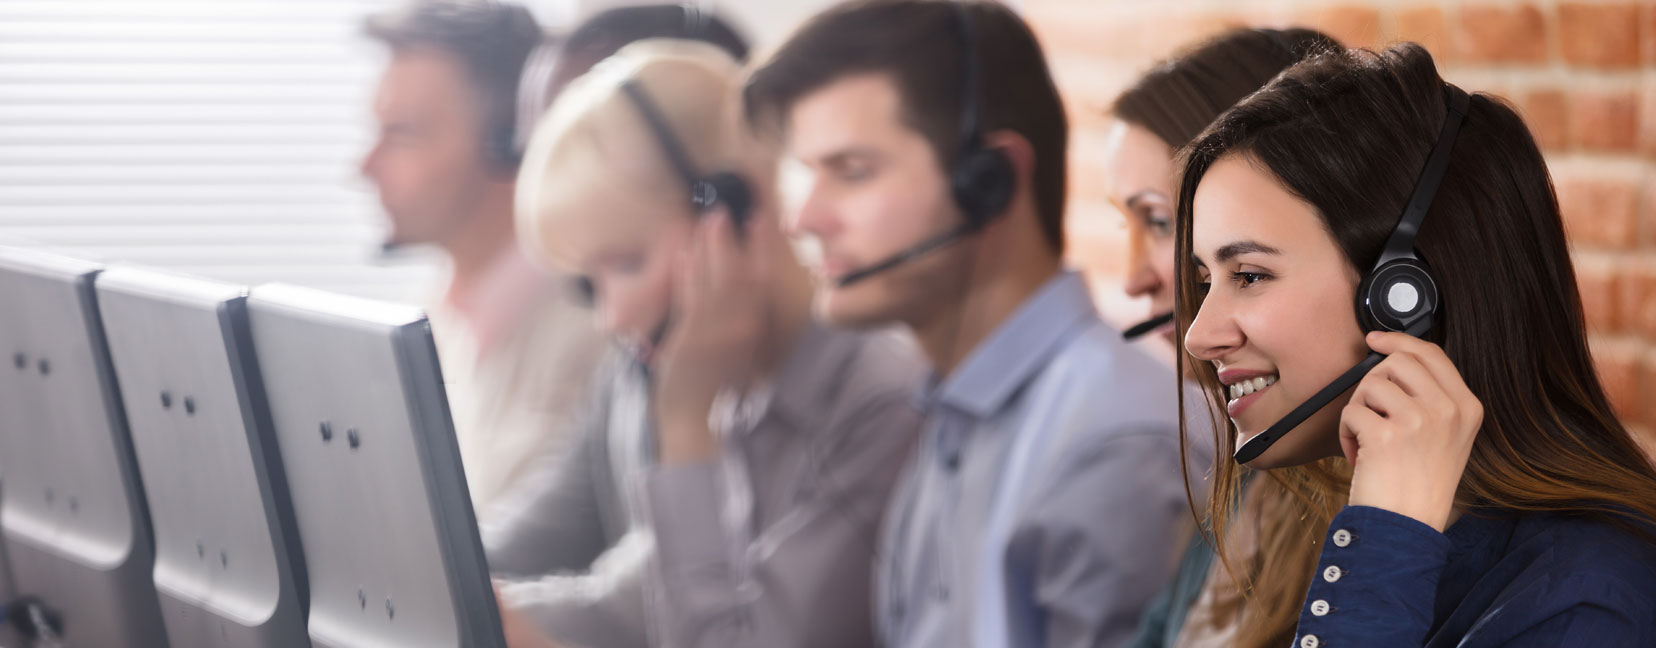 Open Access BPO now offers multilingual support in 13 languages